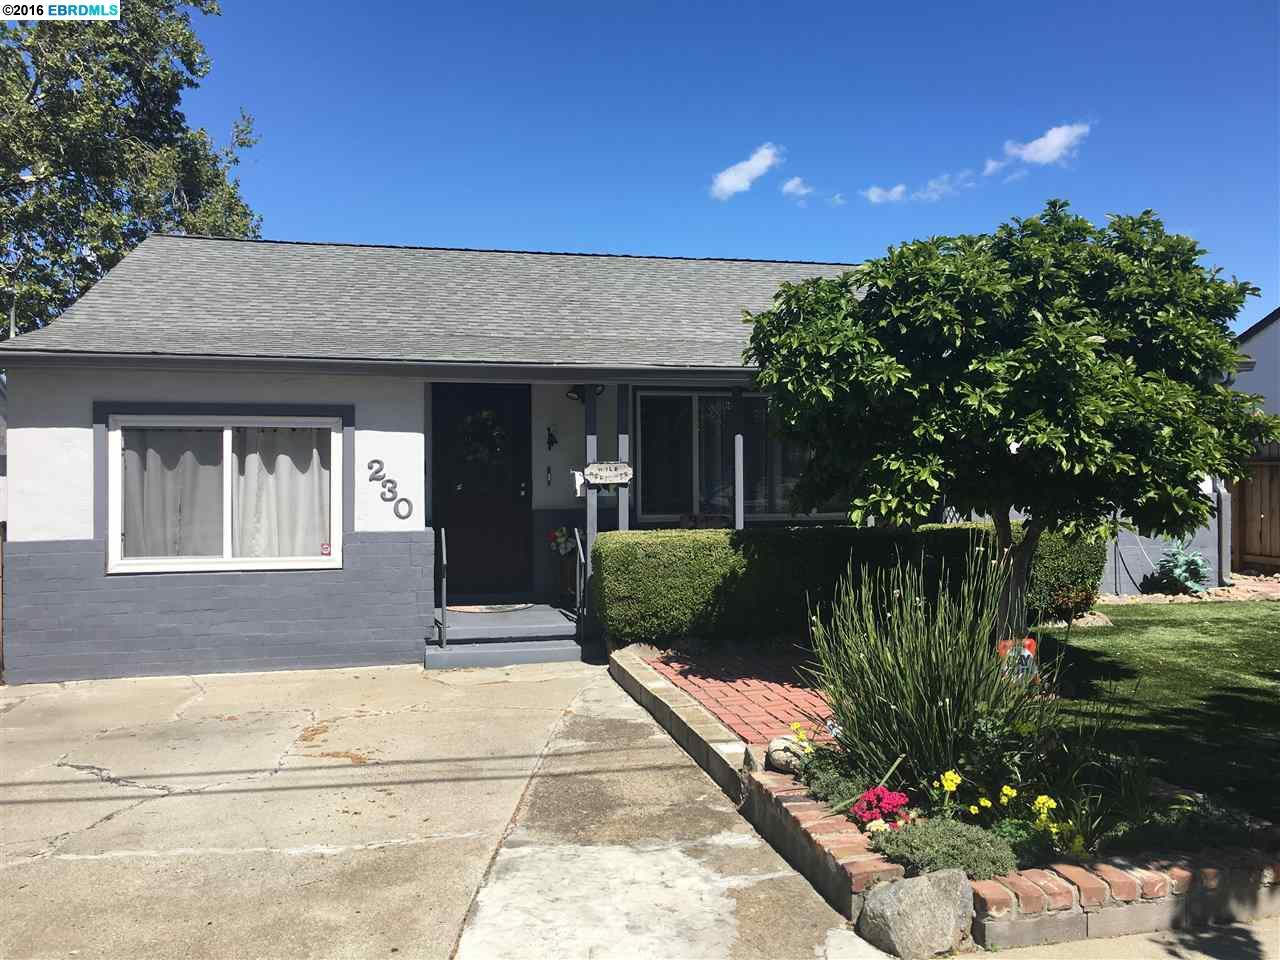 230 William Reed Dr, Antioch, CA